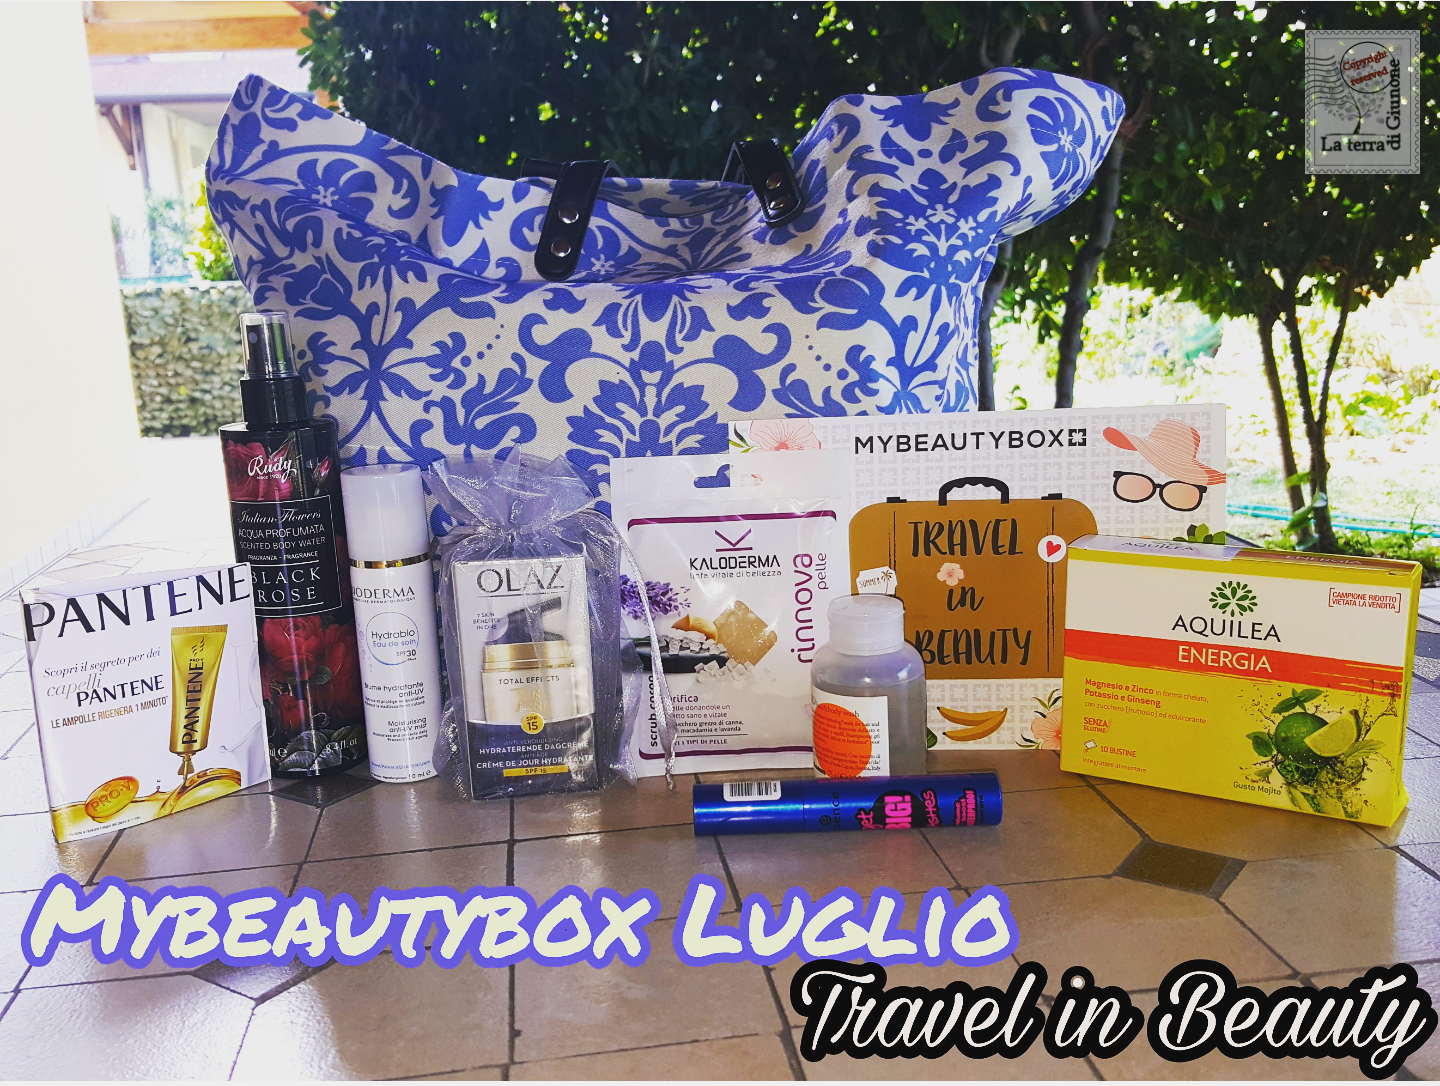 Mybeautybox- Travel in Beauty- Luglio 2017